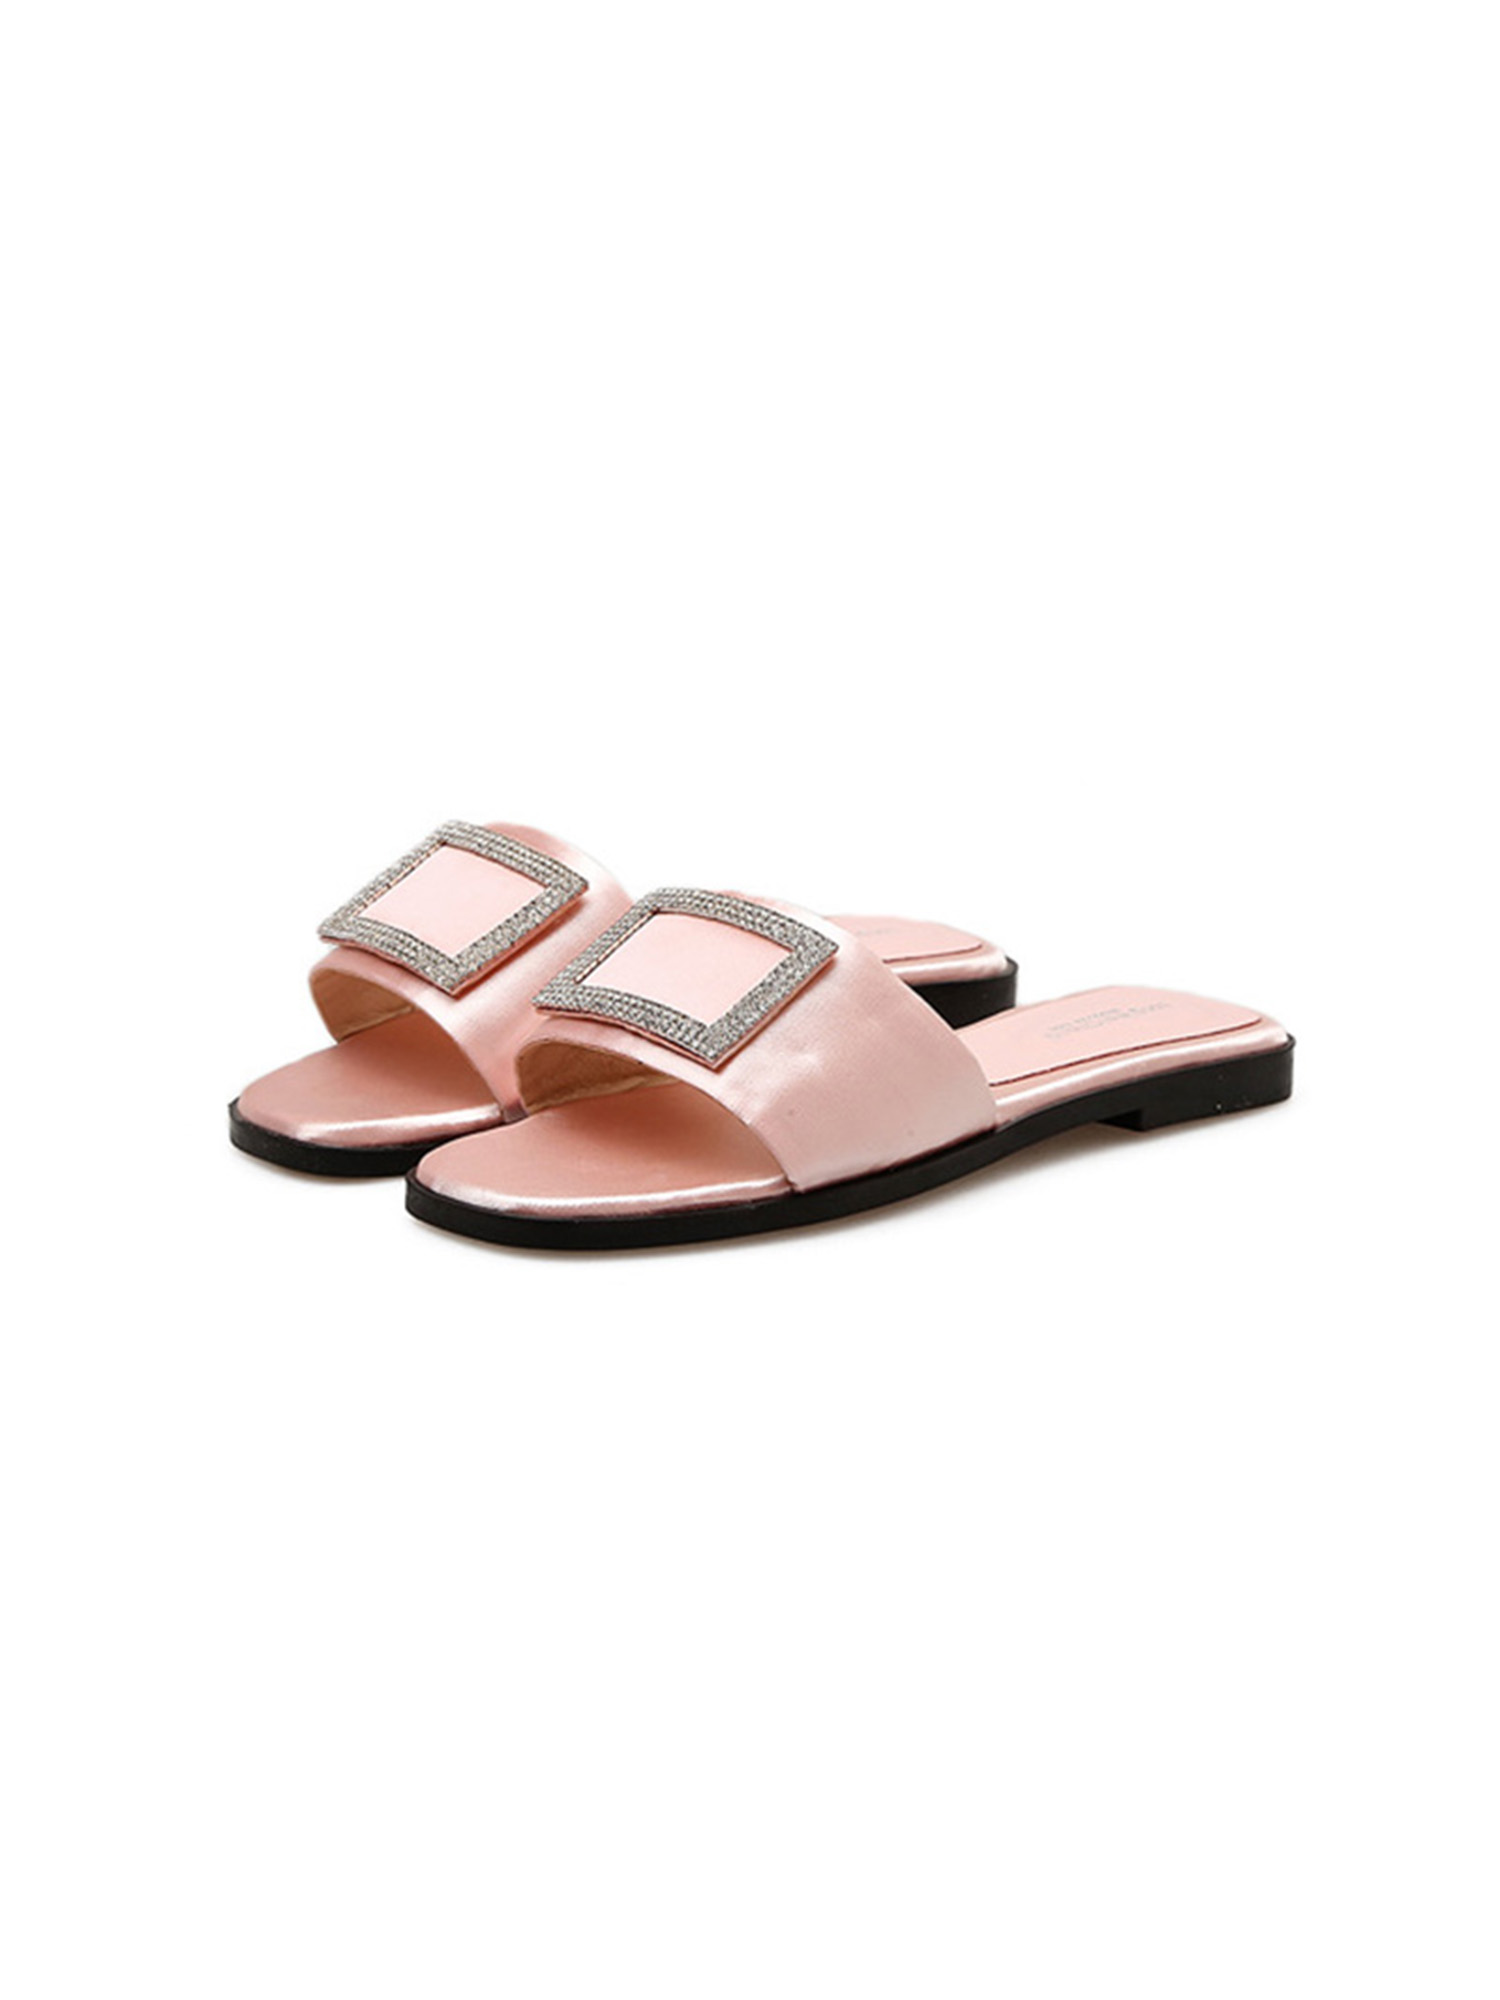 Details about  /Women/'s Rhinestone Sandals Chunky Heels Open Toe Slipper Casual Shoes Slip On